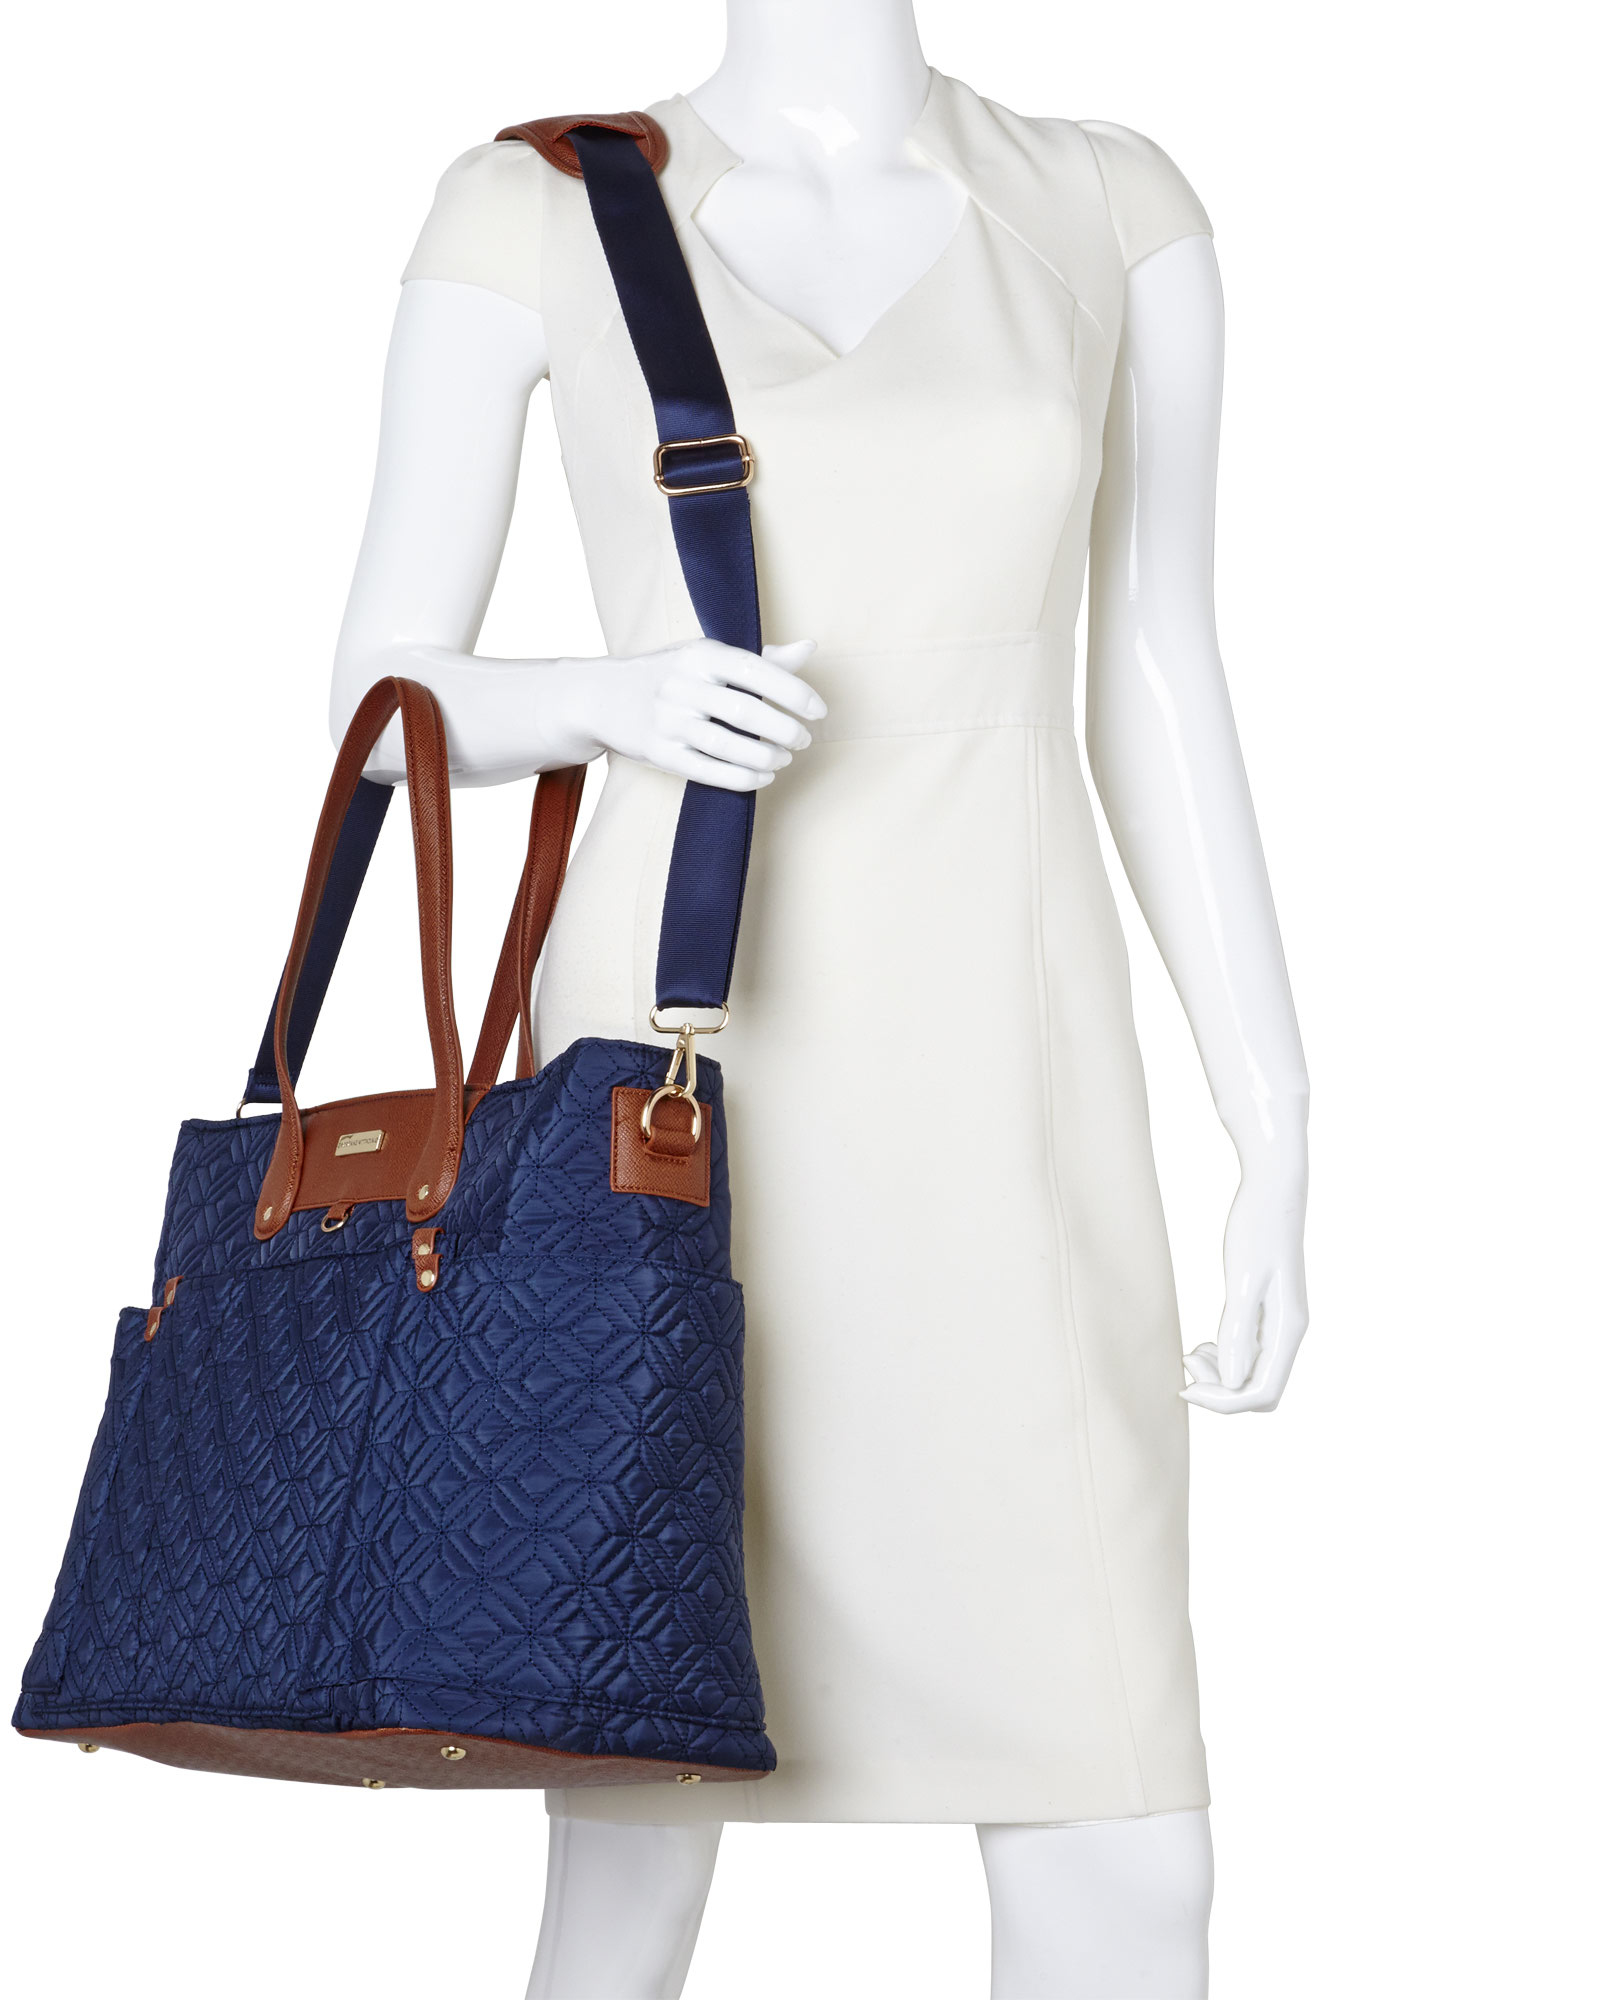 Adrienne vittadini Navy Quilted Laptop Tote in Blue   Lyst : quilted laptop tote - Adamdwight.com